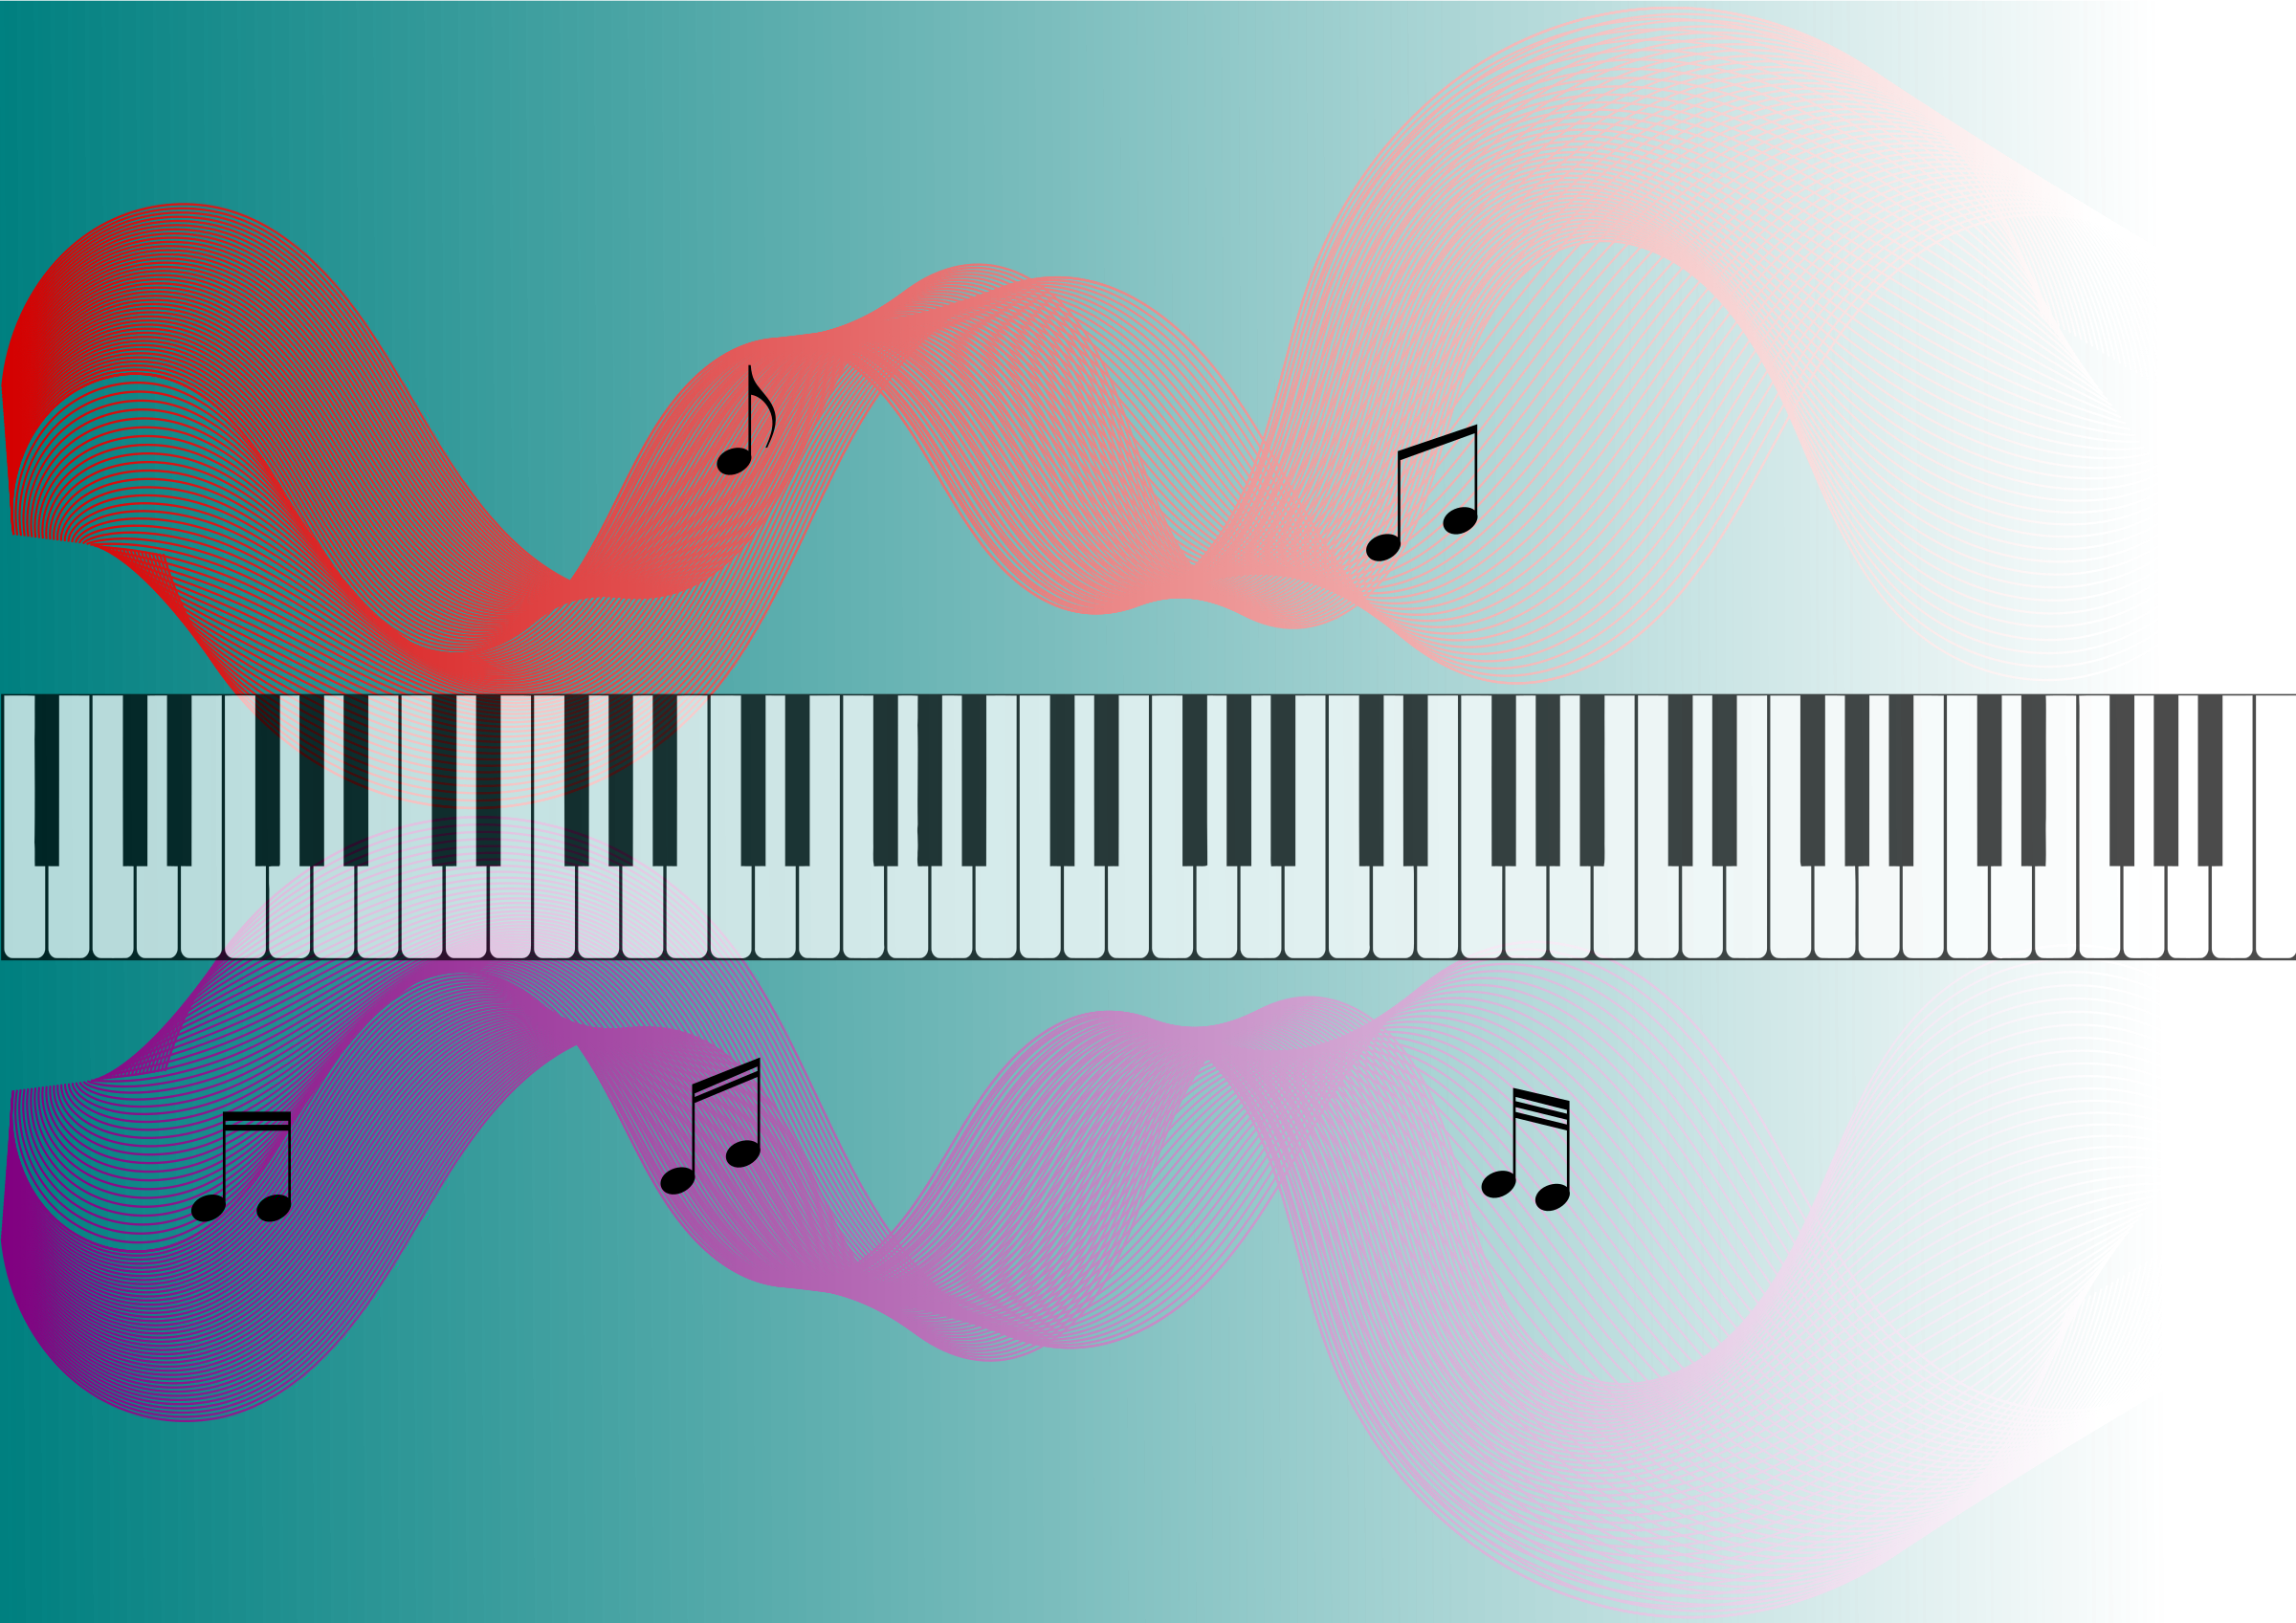 Piano clipart harmony music. Melodic big image png